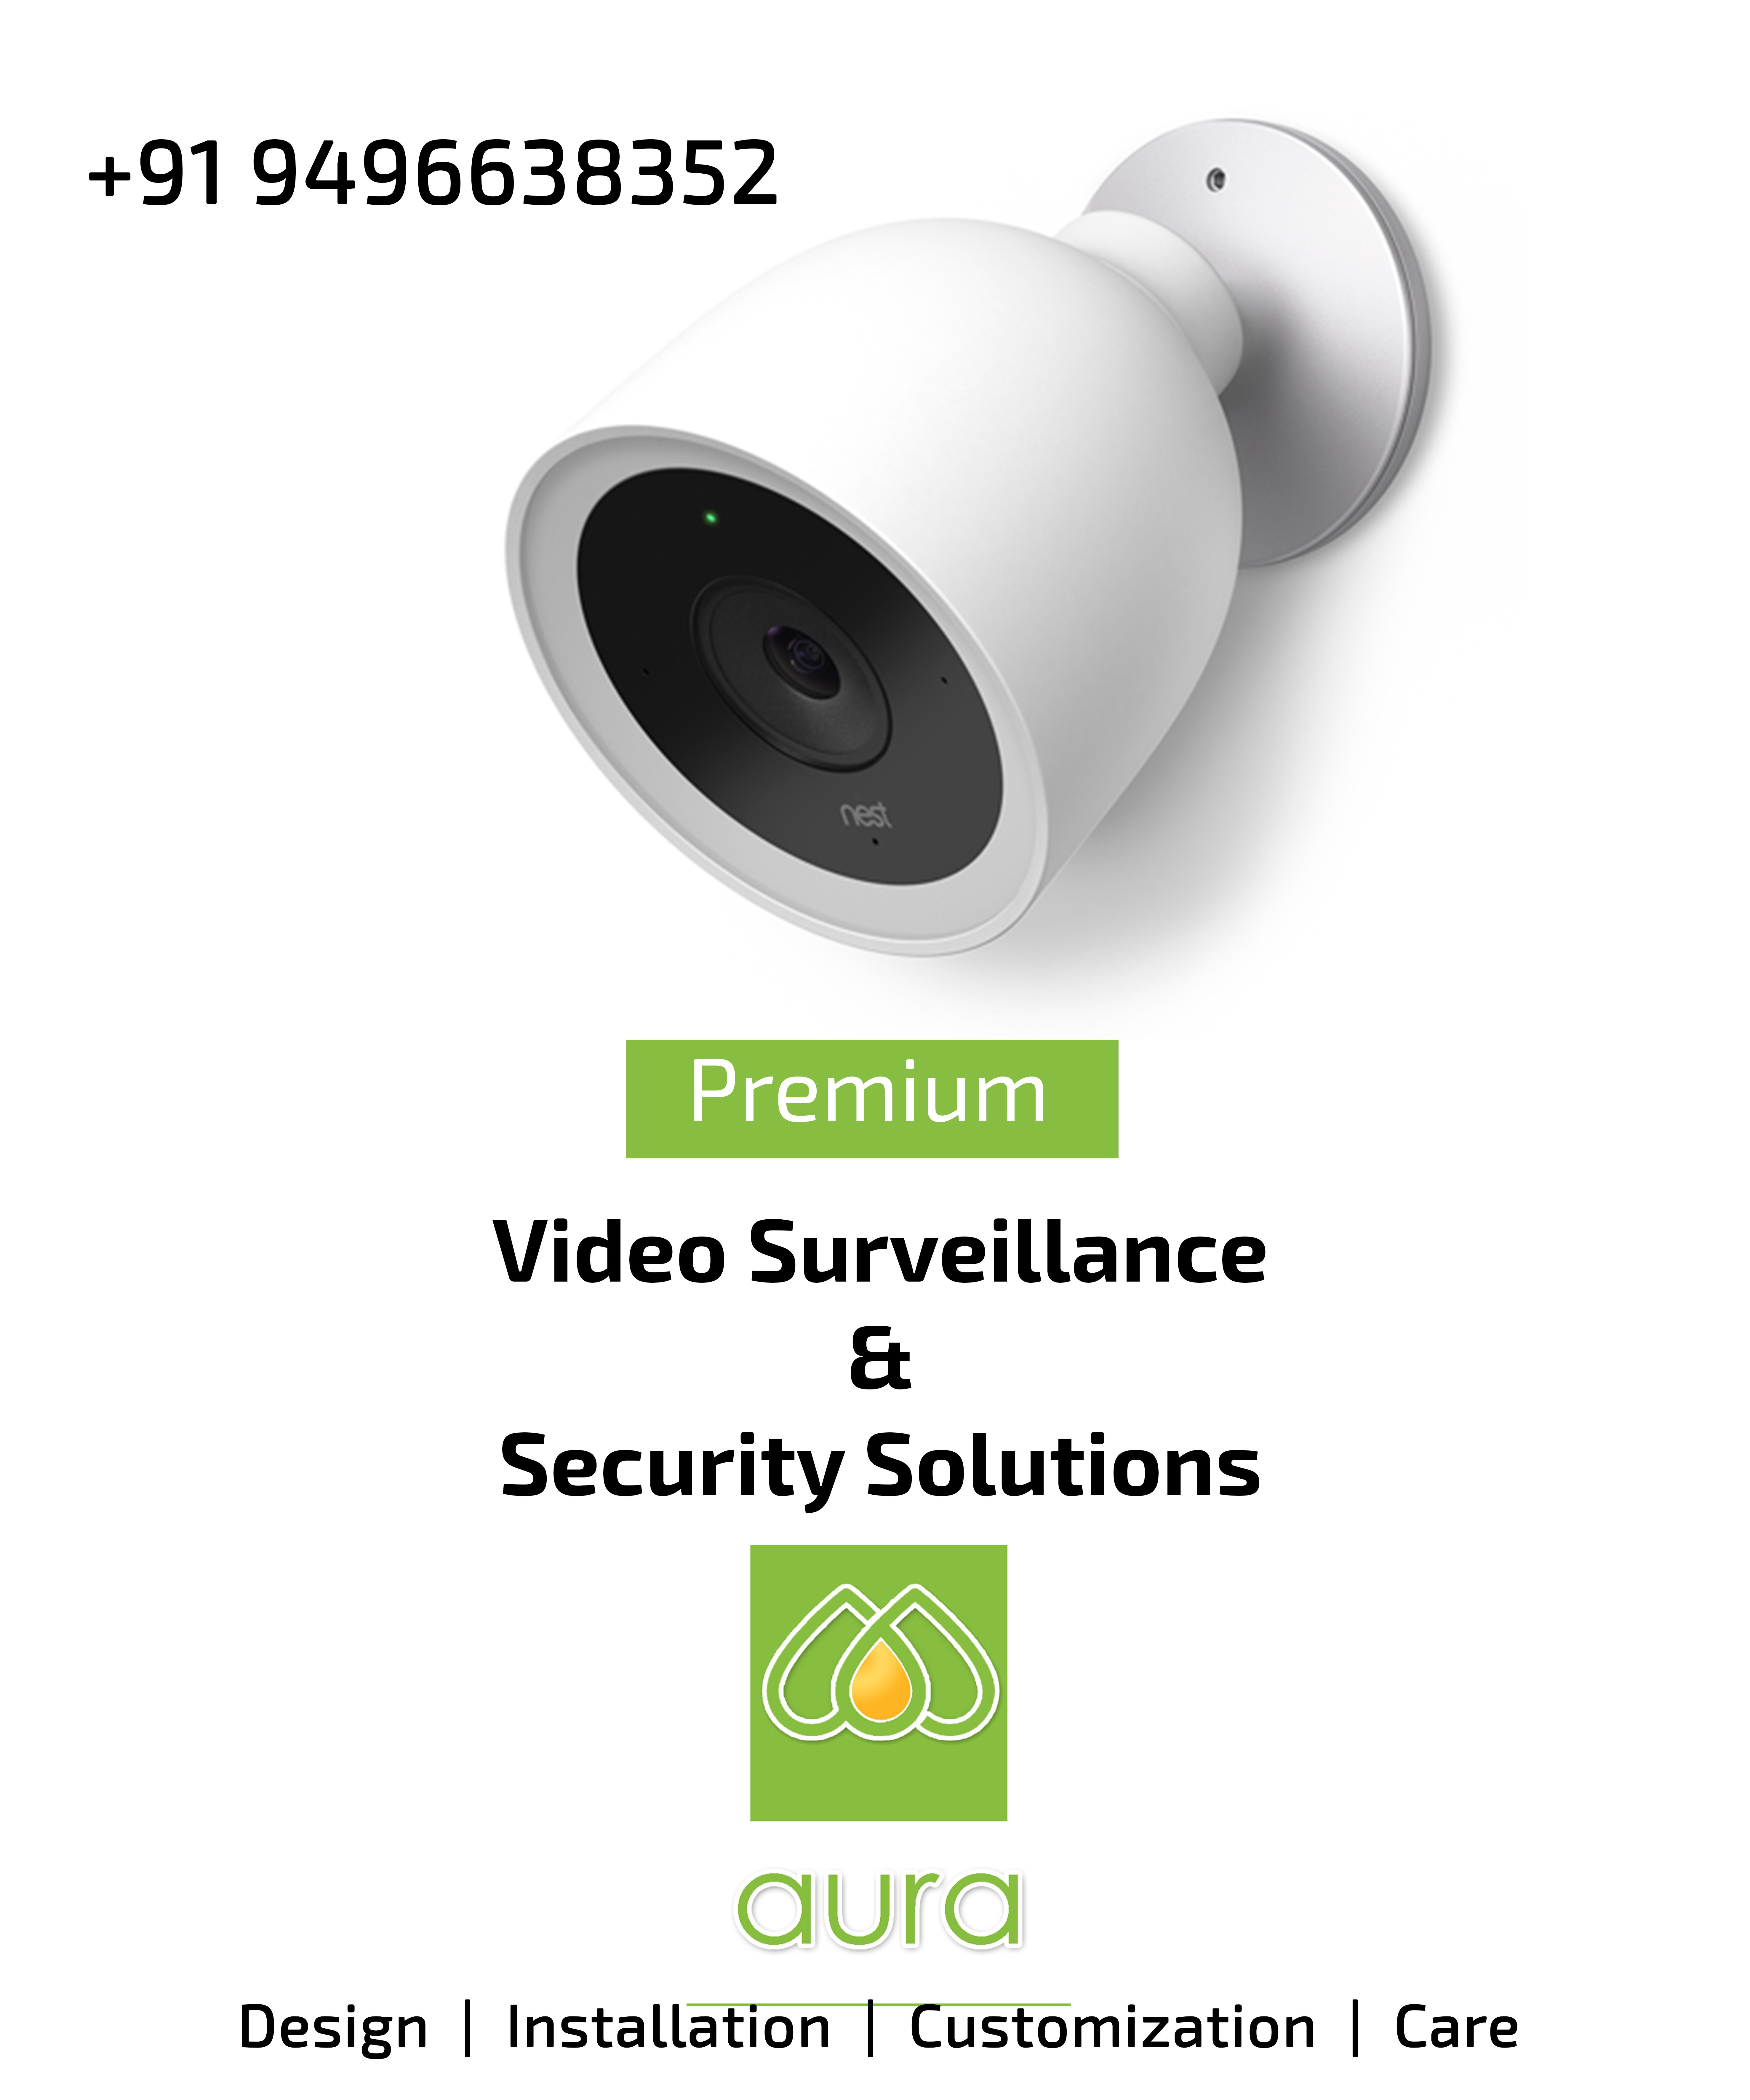 Aura is committed to quality, leading CCTV Camera